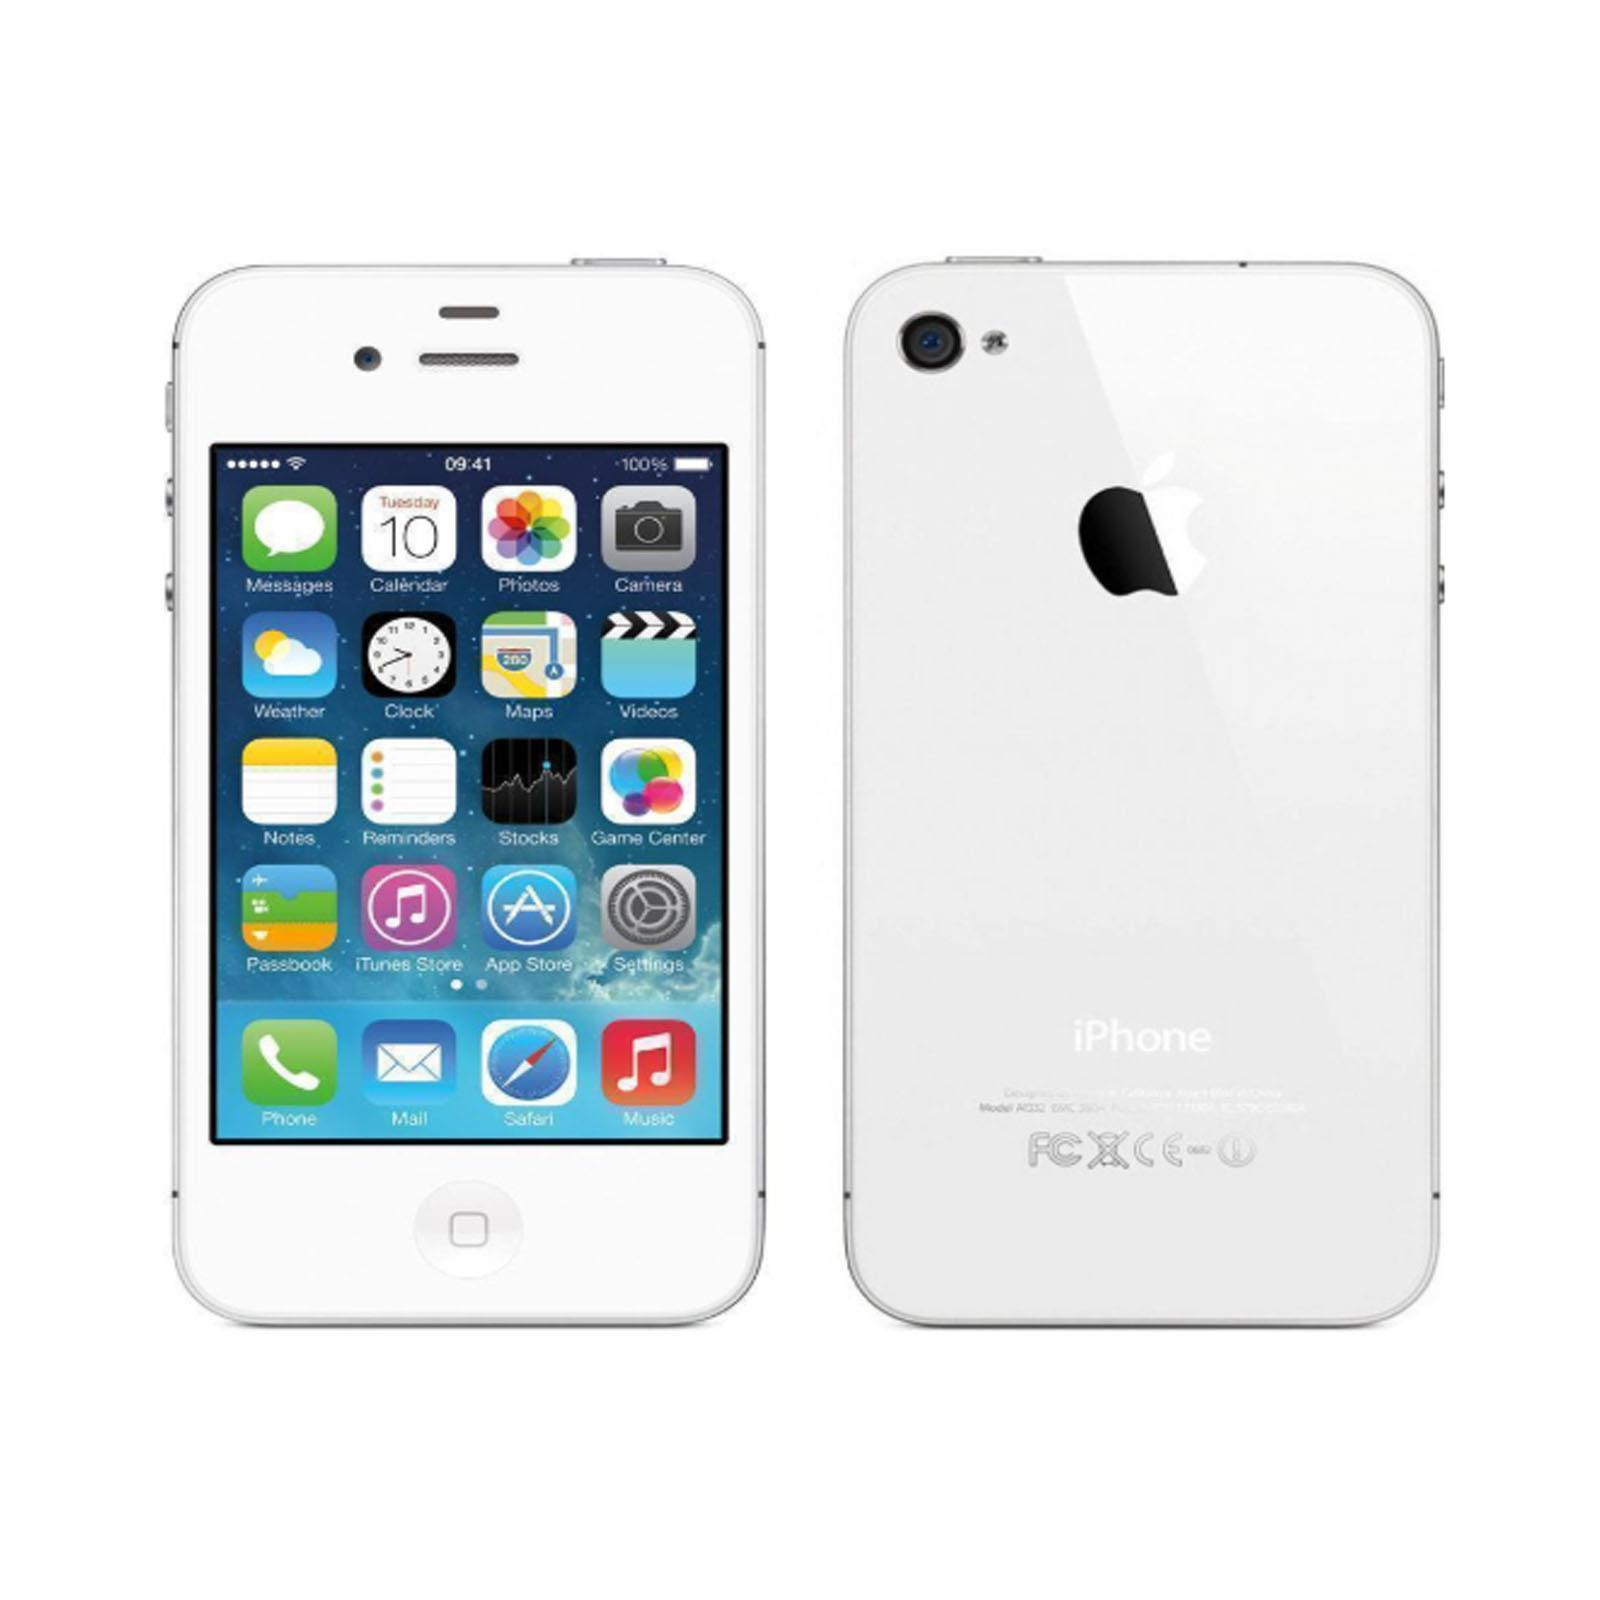 iphone 4s trade in value